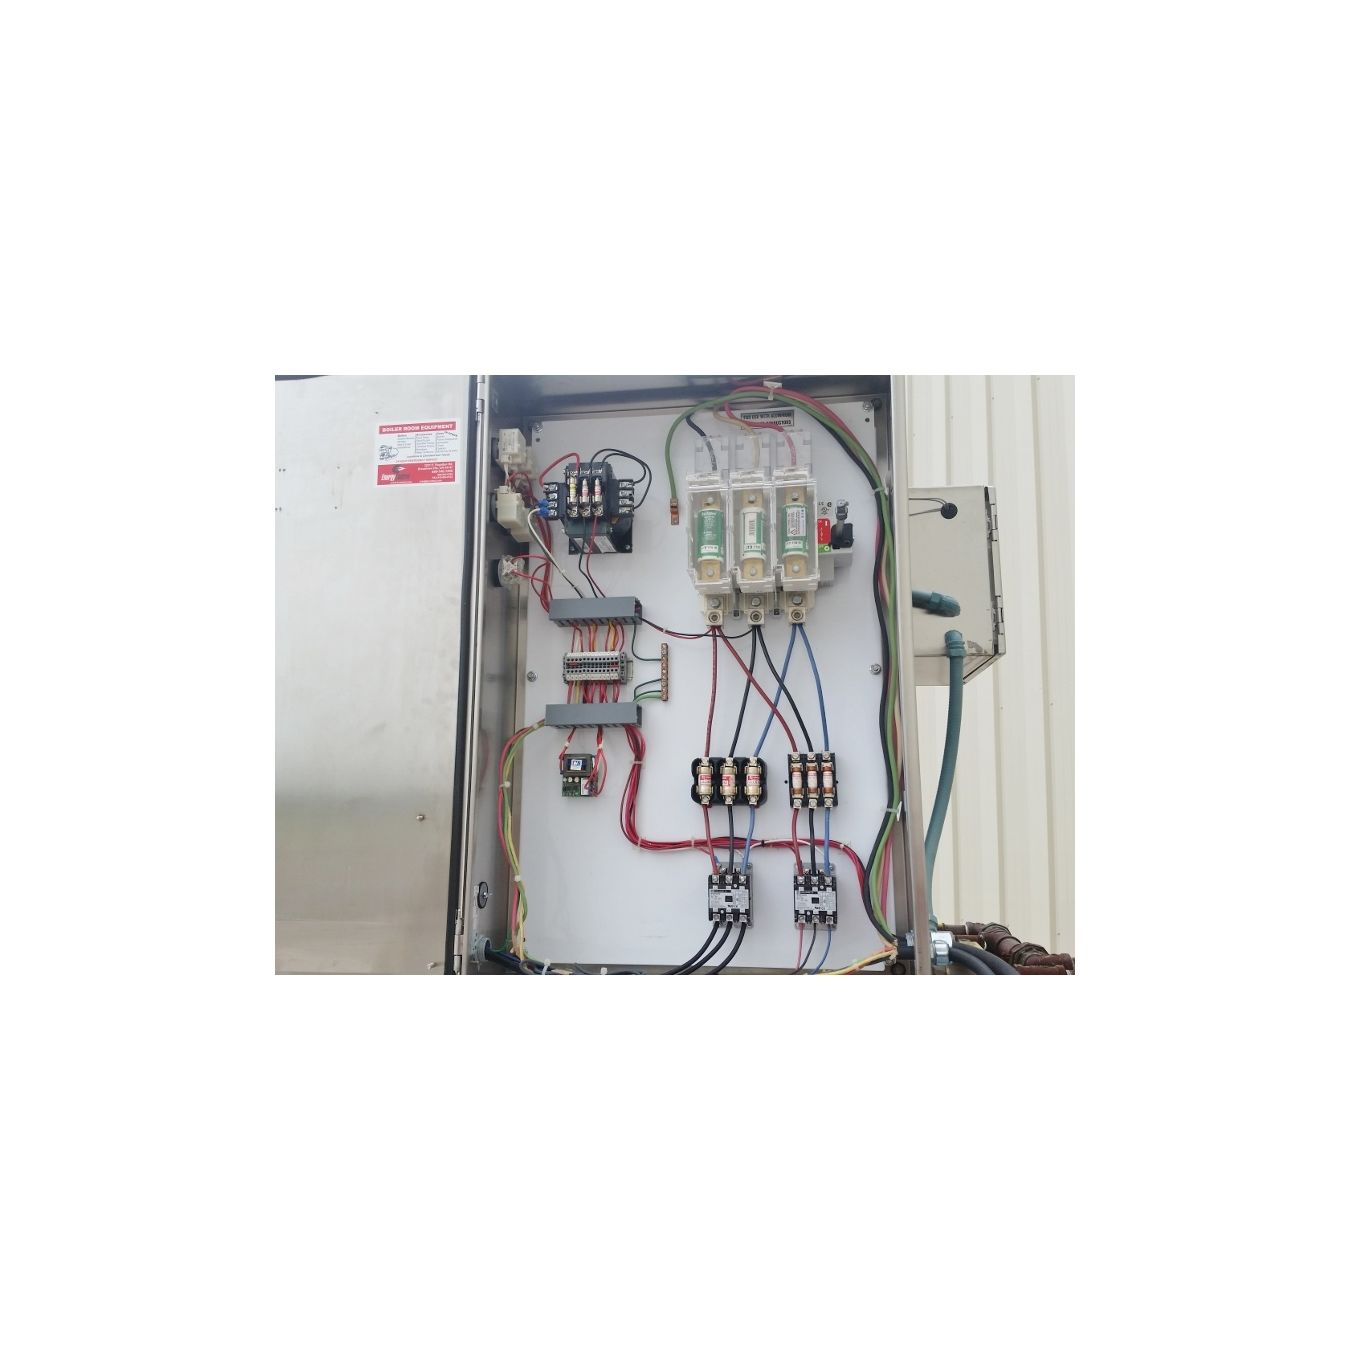 Used Cleaverbrooks Model Wb12024kw160hw Electric Hot Water Brooks Wiring Diagram Boiler